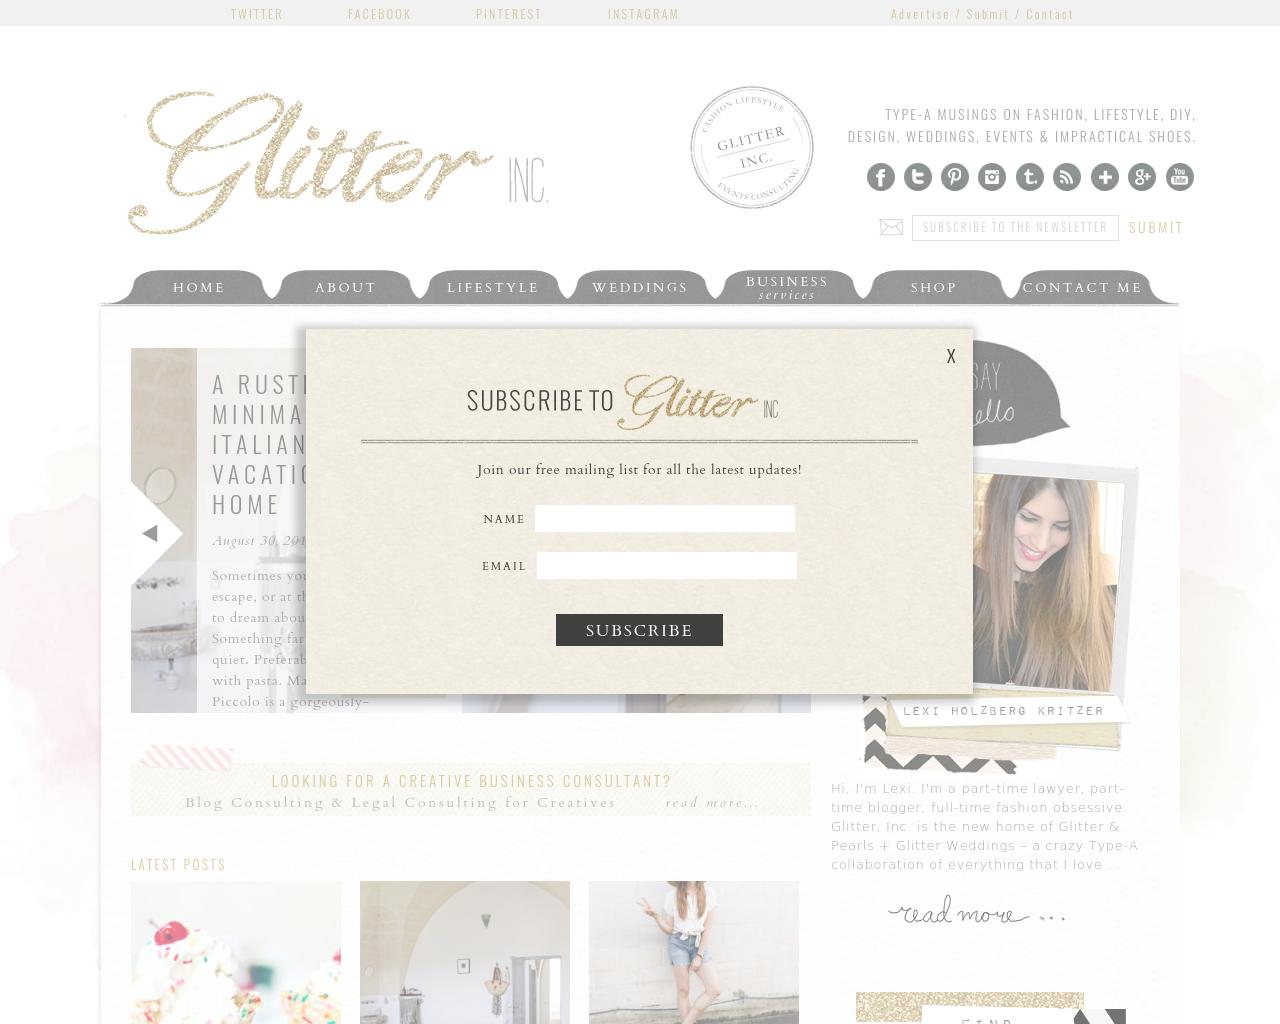 Glitterinc-Advertising-Reviews-Pricing